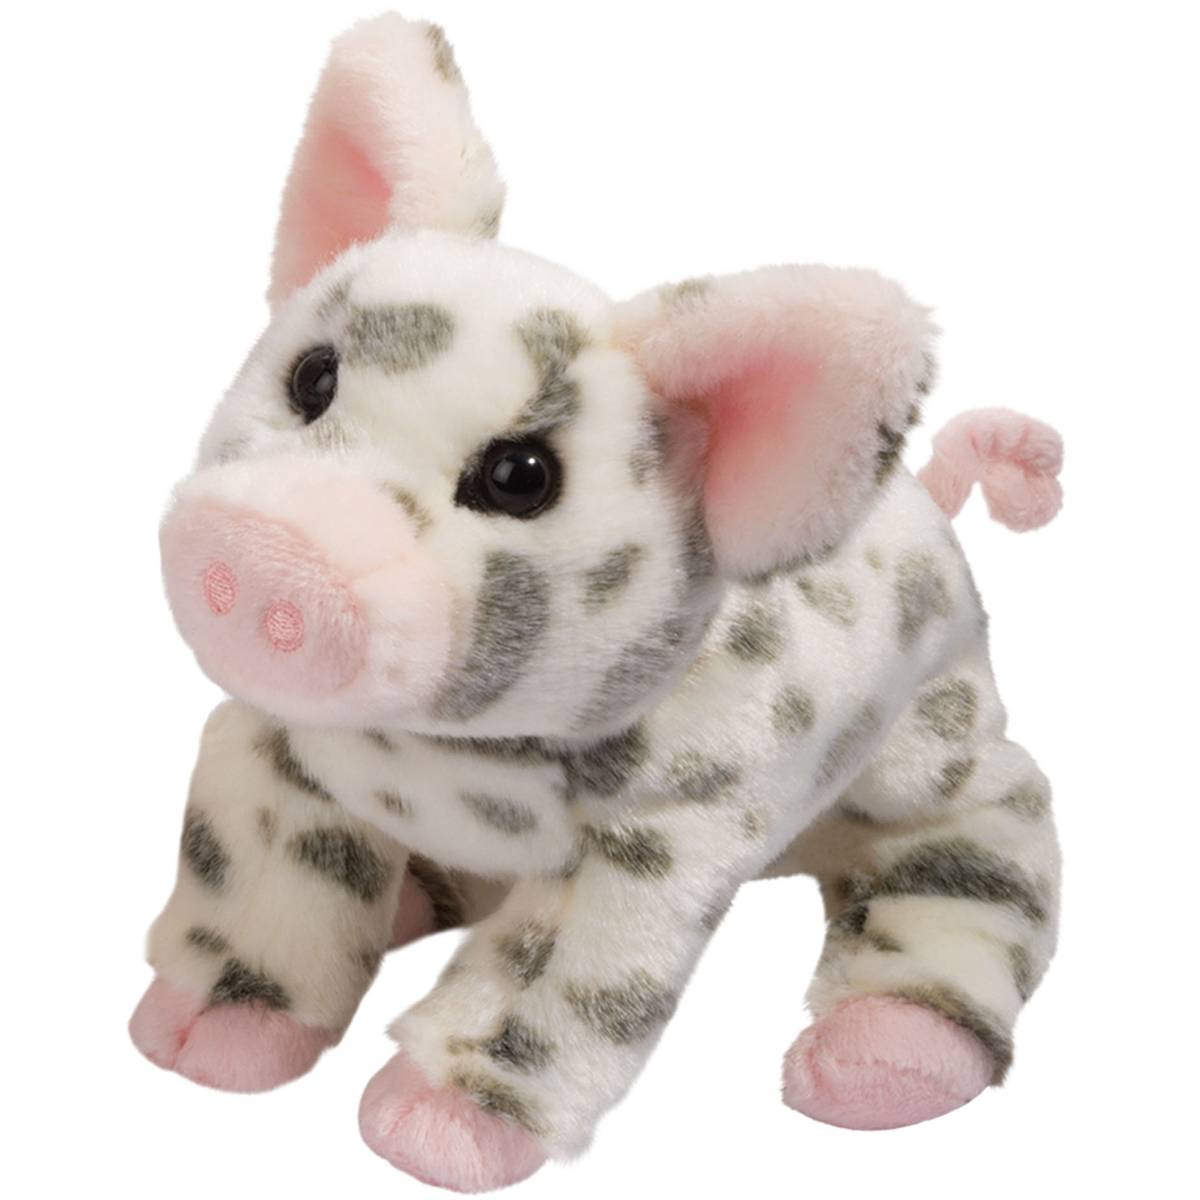 shop stuffed animals blain u0027s farm u0026 fleet